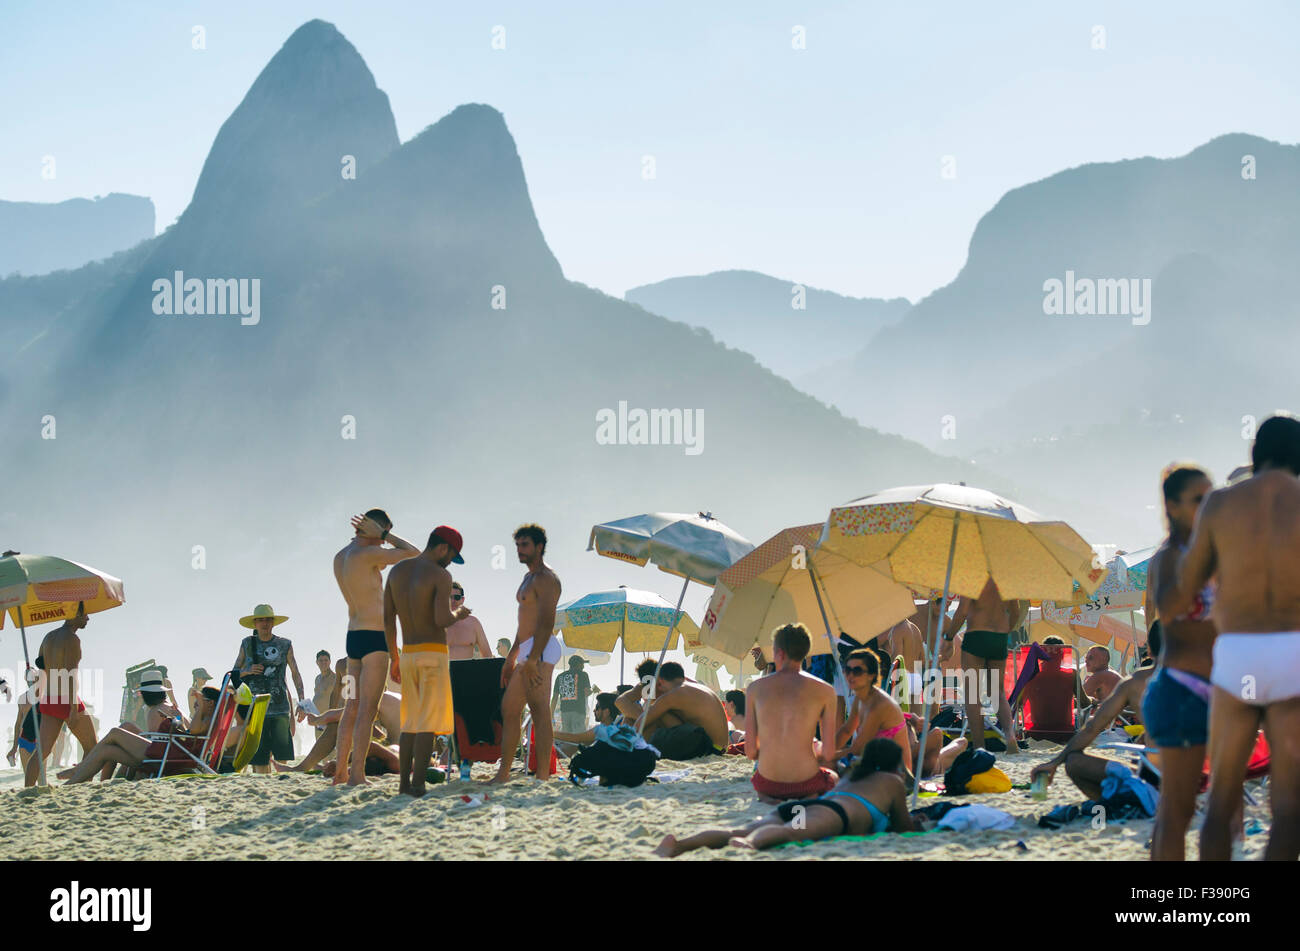 RIO DE JANEIRO, BRAZIL - JANUARY 20, 2013: Locals and visitors crowd Ipanema Beach against the iconic Two Brothers - Stock Image